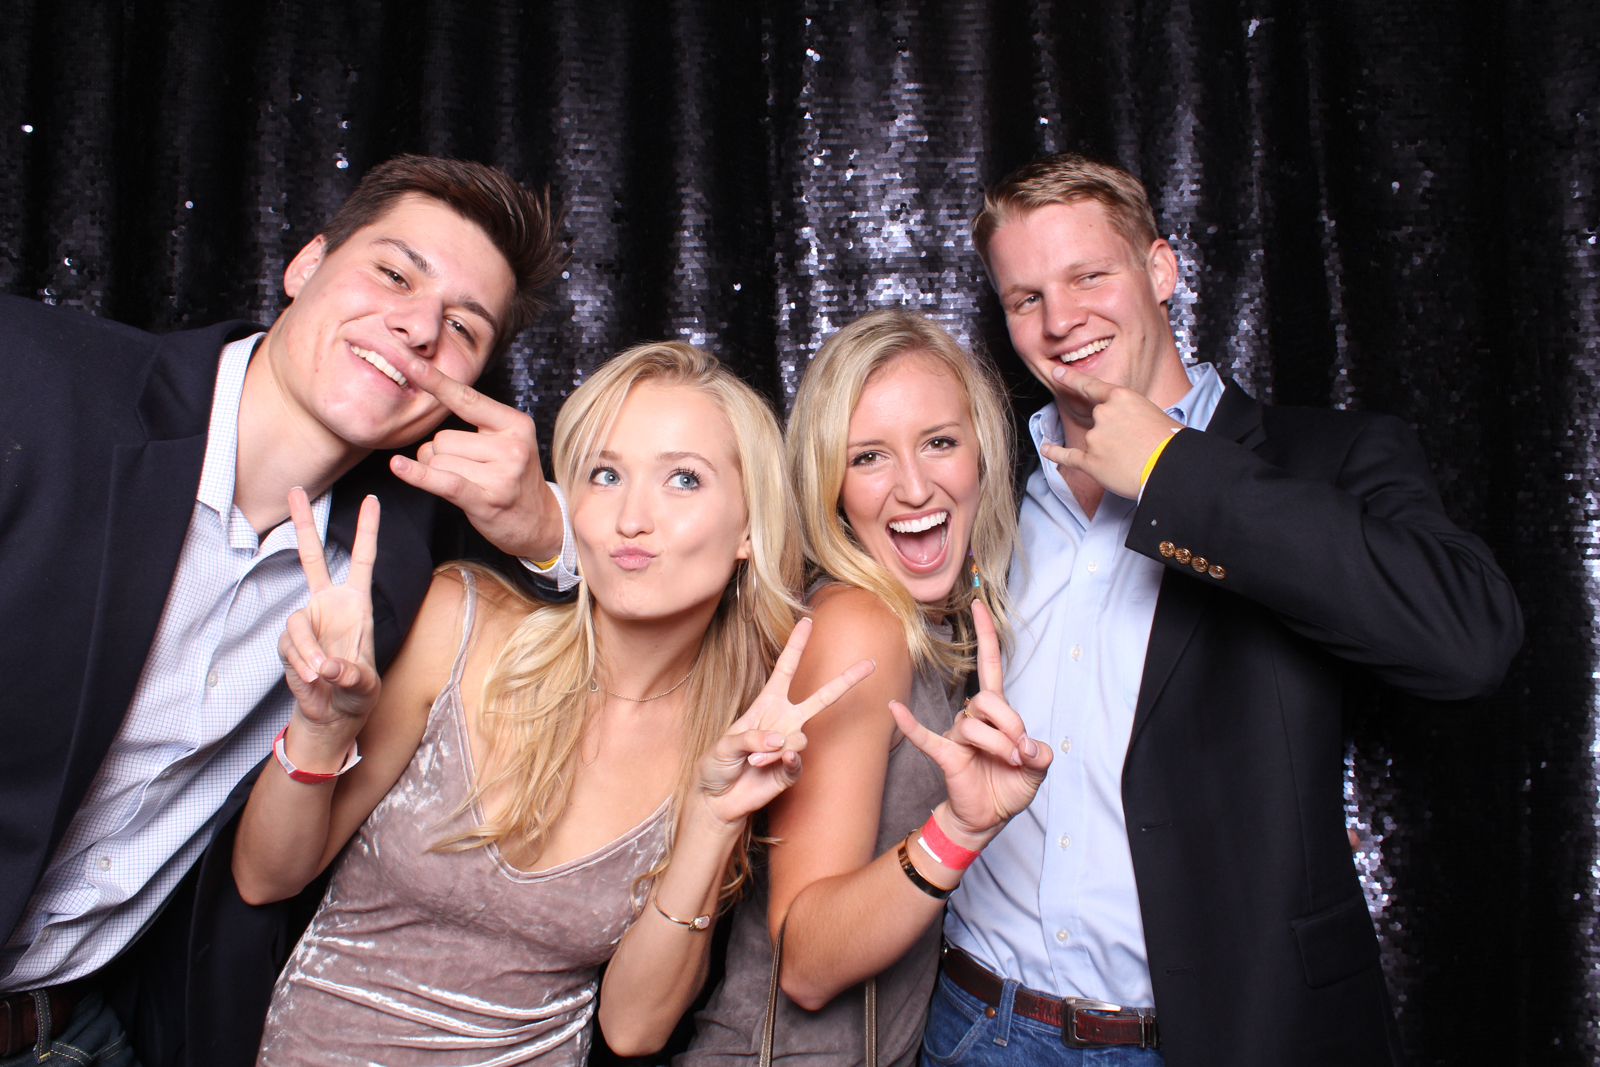 photo booth rental austin wedding photo booth corporate holiday party photo booth sxsw greek formal bid day date party81.jpg